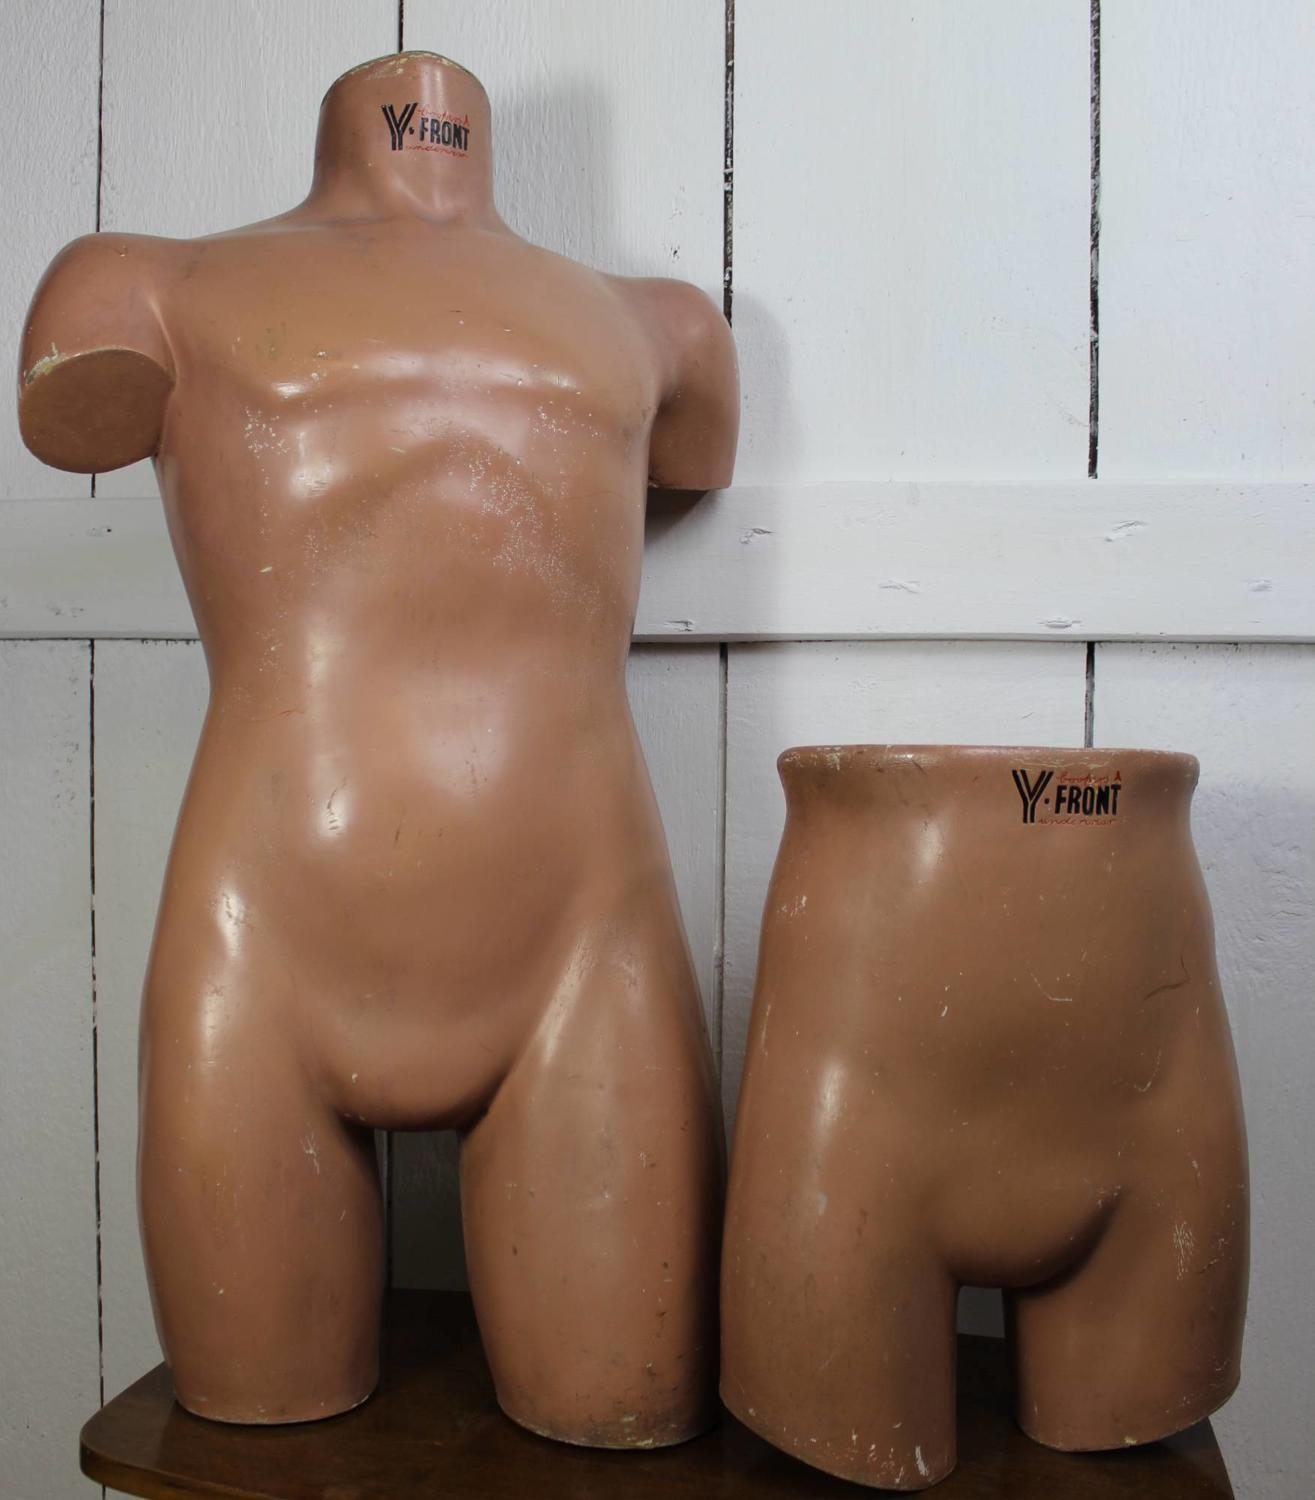 Y-Fronts Shop Display Advertising Mannequins